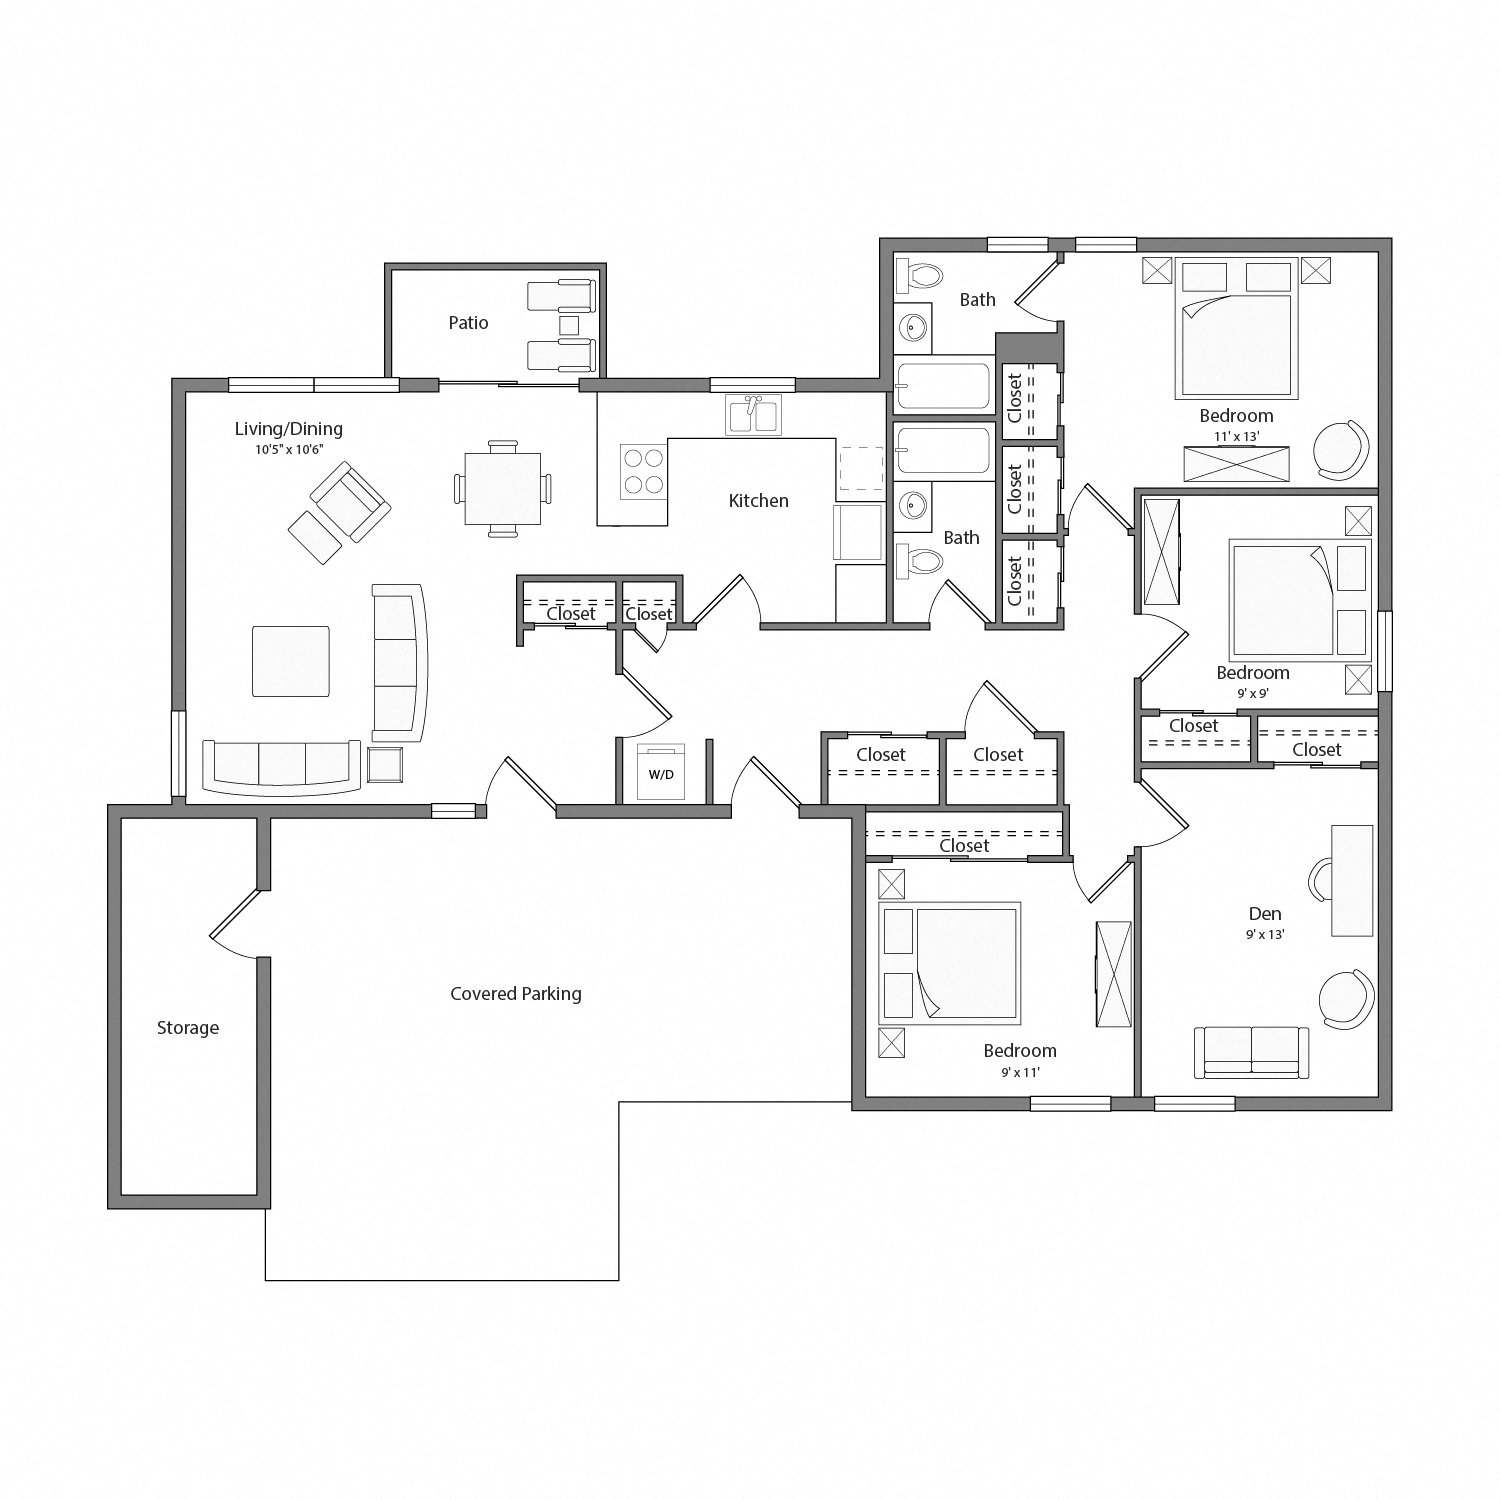 Pebble Beach house floor plan diagram. Four bedrooms, two bathrooms, a kitchen, an open living and dining area with doors to a patio, a laundry nook, and a covered parking area.